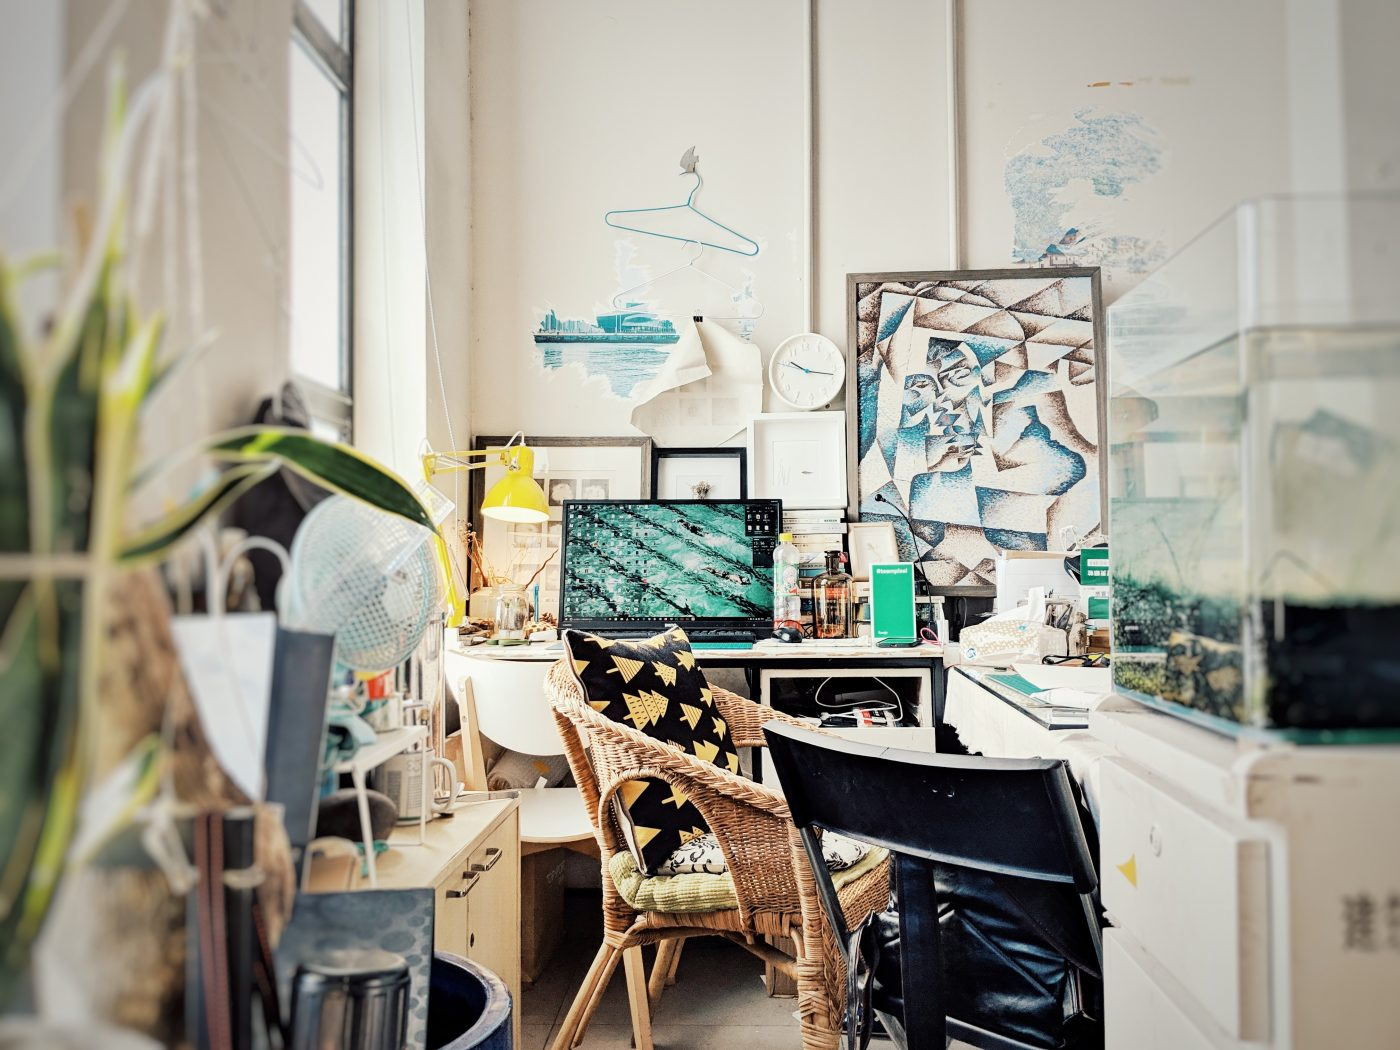 A creative space: How to create a sacred space at home